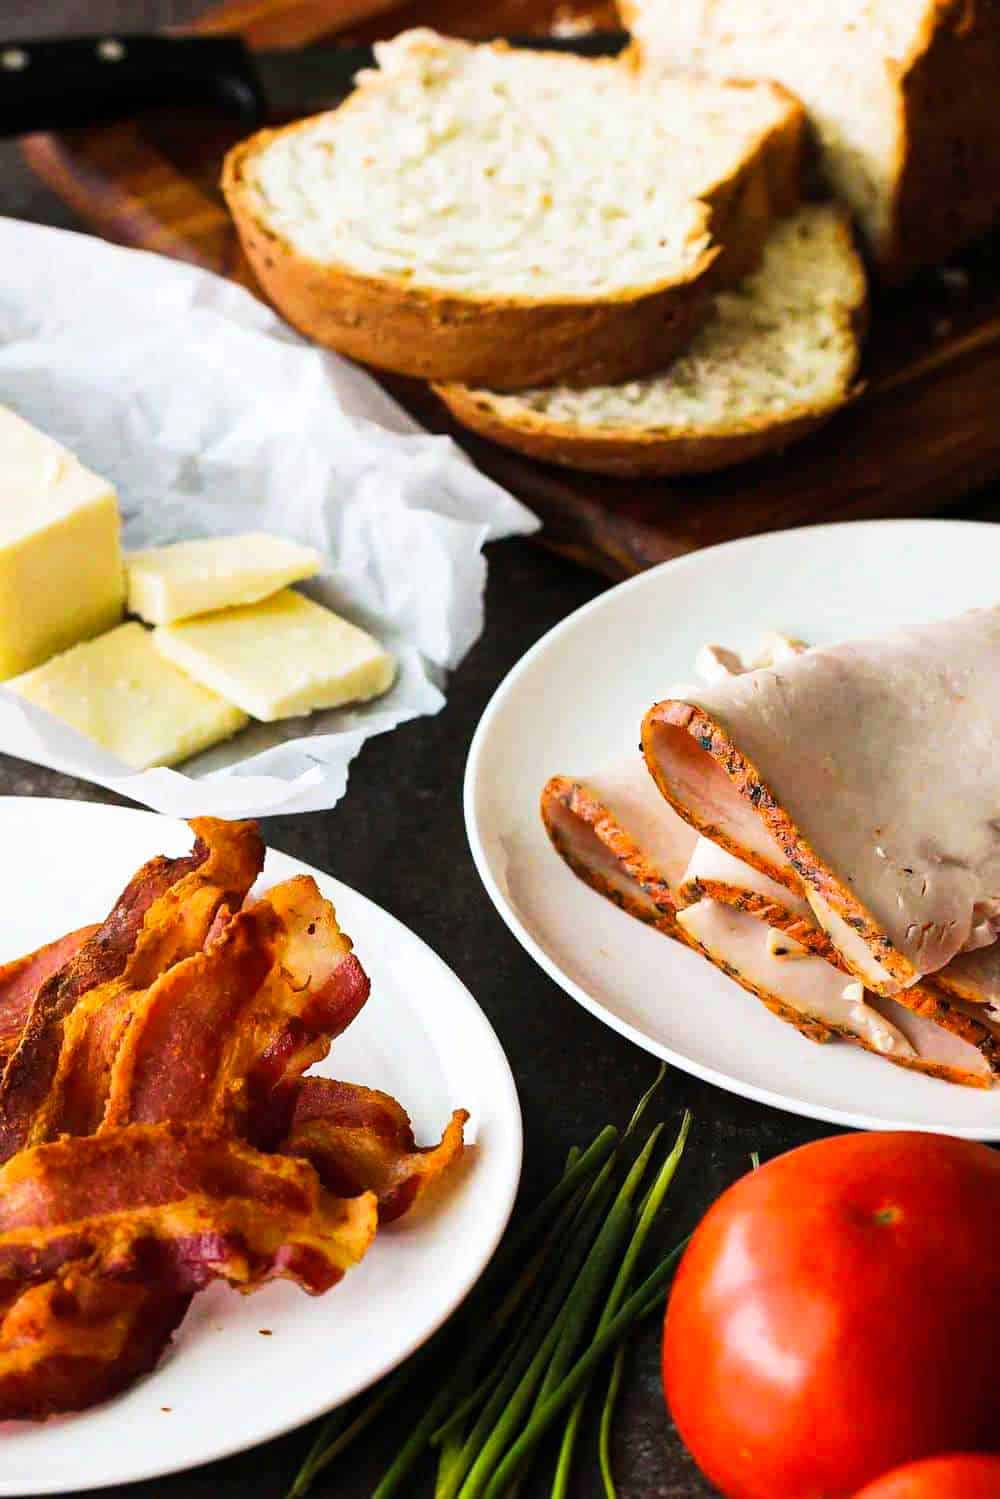 White plates filled with cooked bacon, slice turkey, butter, and surrounded by a tomato and sliced bread.